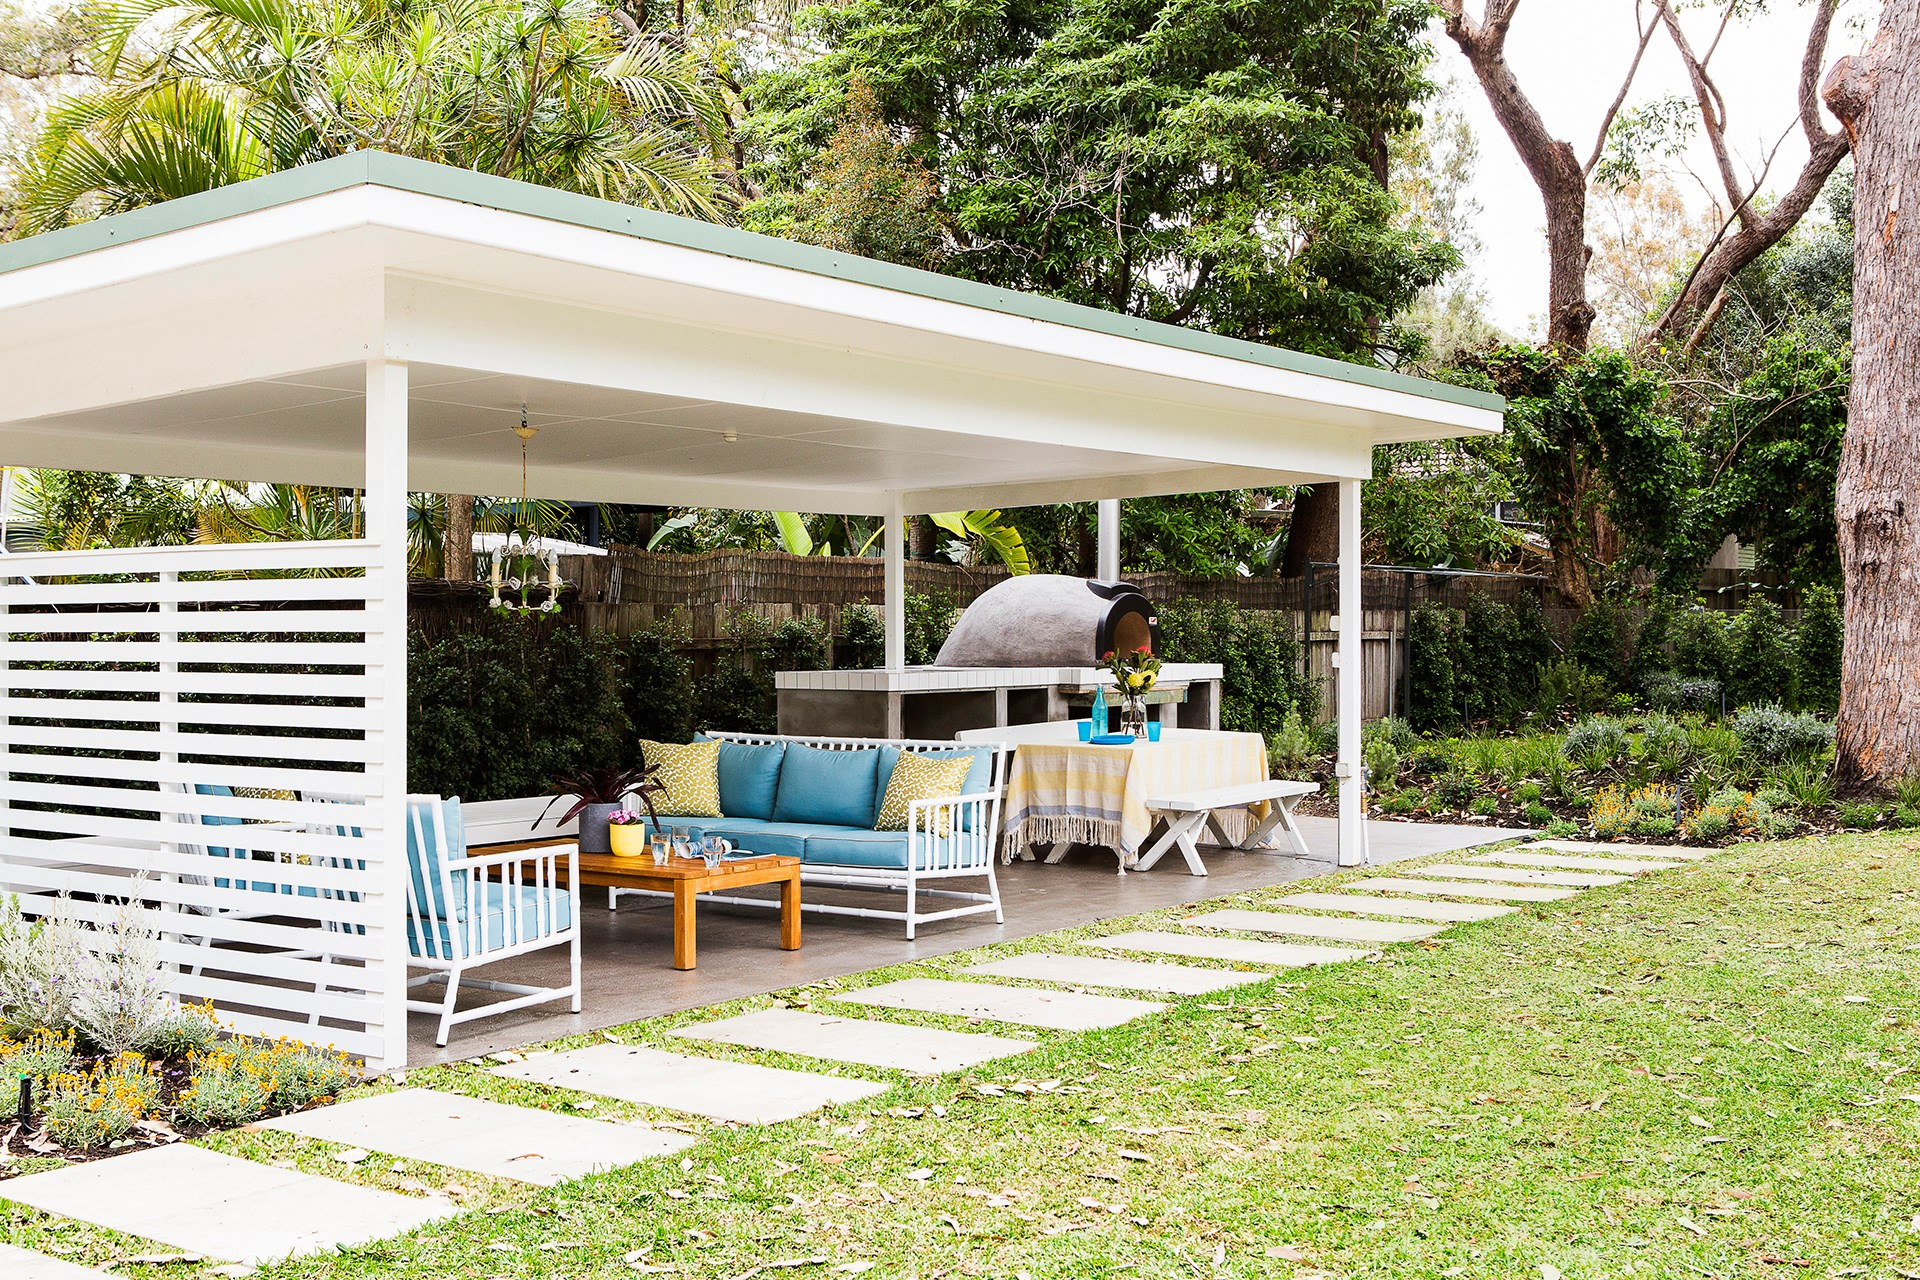 """A simple backyard pergola means the party can continue no matter what the weather's doing. Take a tour of this [beach cottage](http://www.homestolove.com.au/gallery-melissas-low-key-beach-cottage-style-2454/?utm_campaign=supplier/